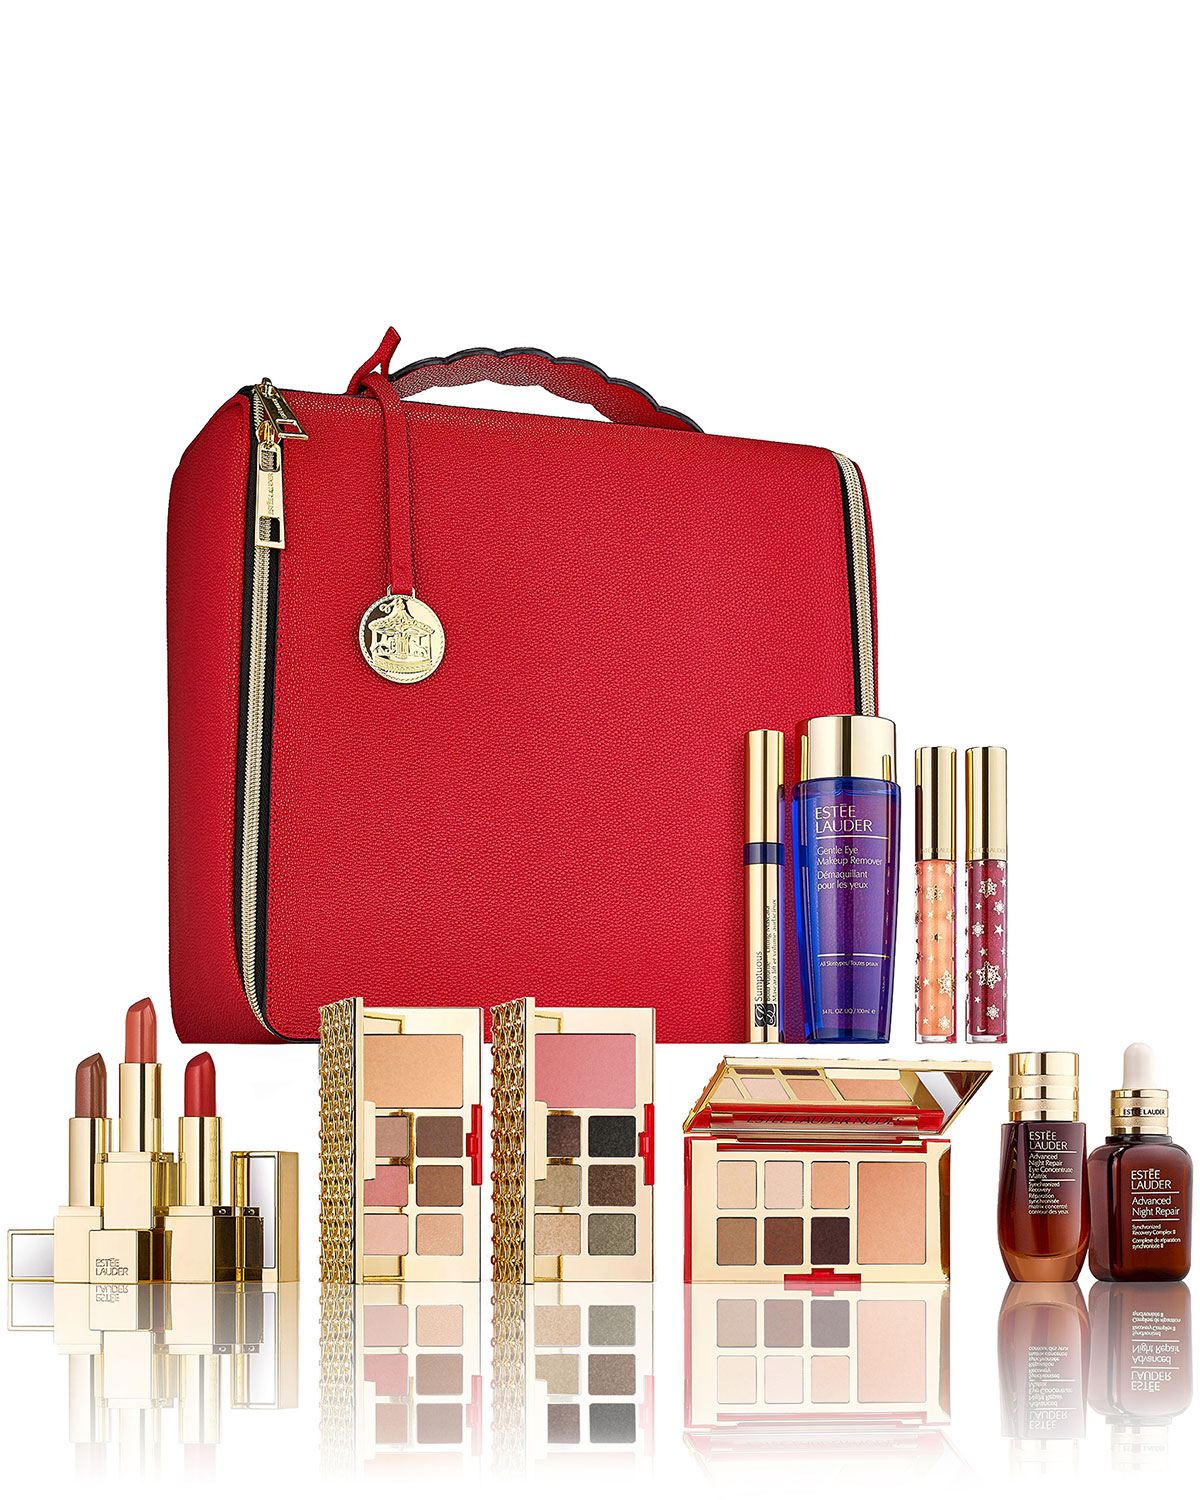 Estee Lauder Blockbuster Set, Only $68 With Any $45 Estee Lauder purchase ($440 Value)